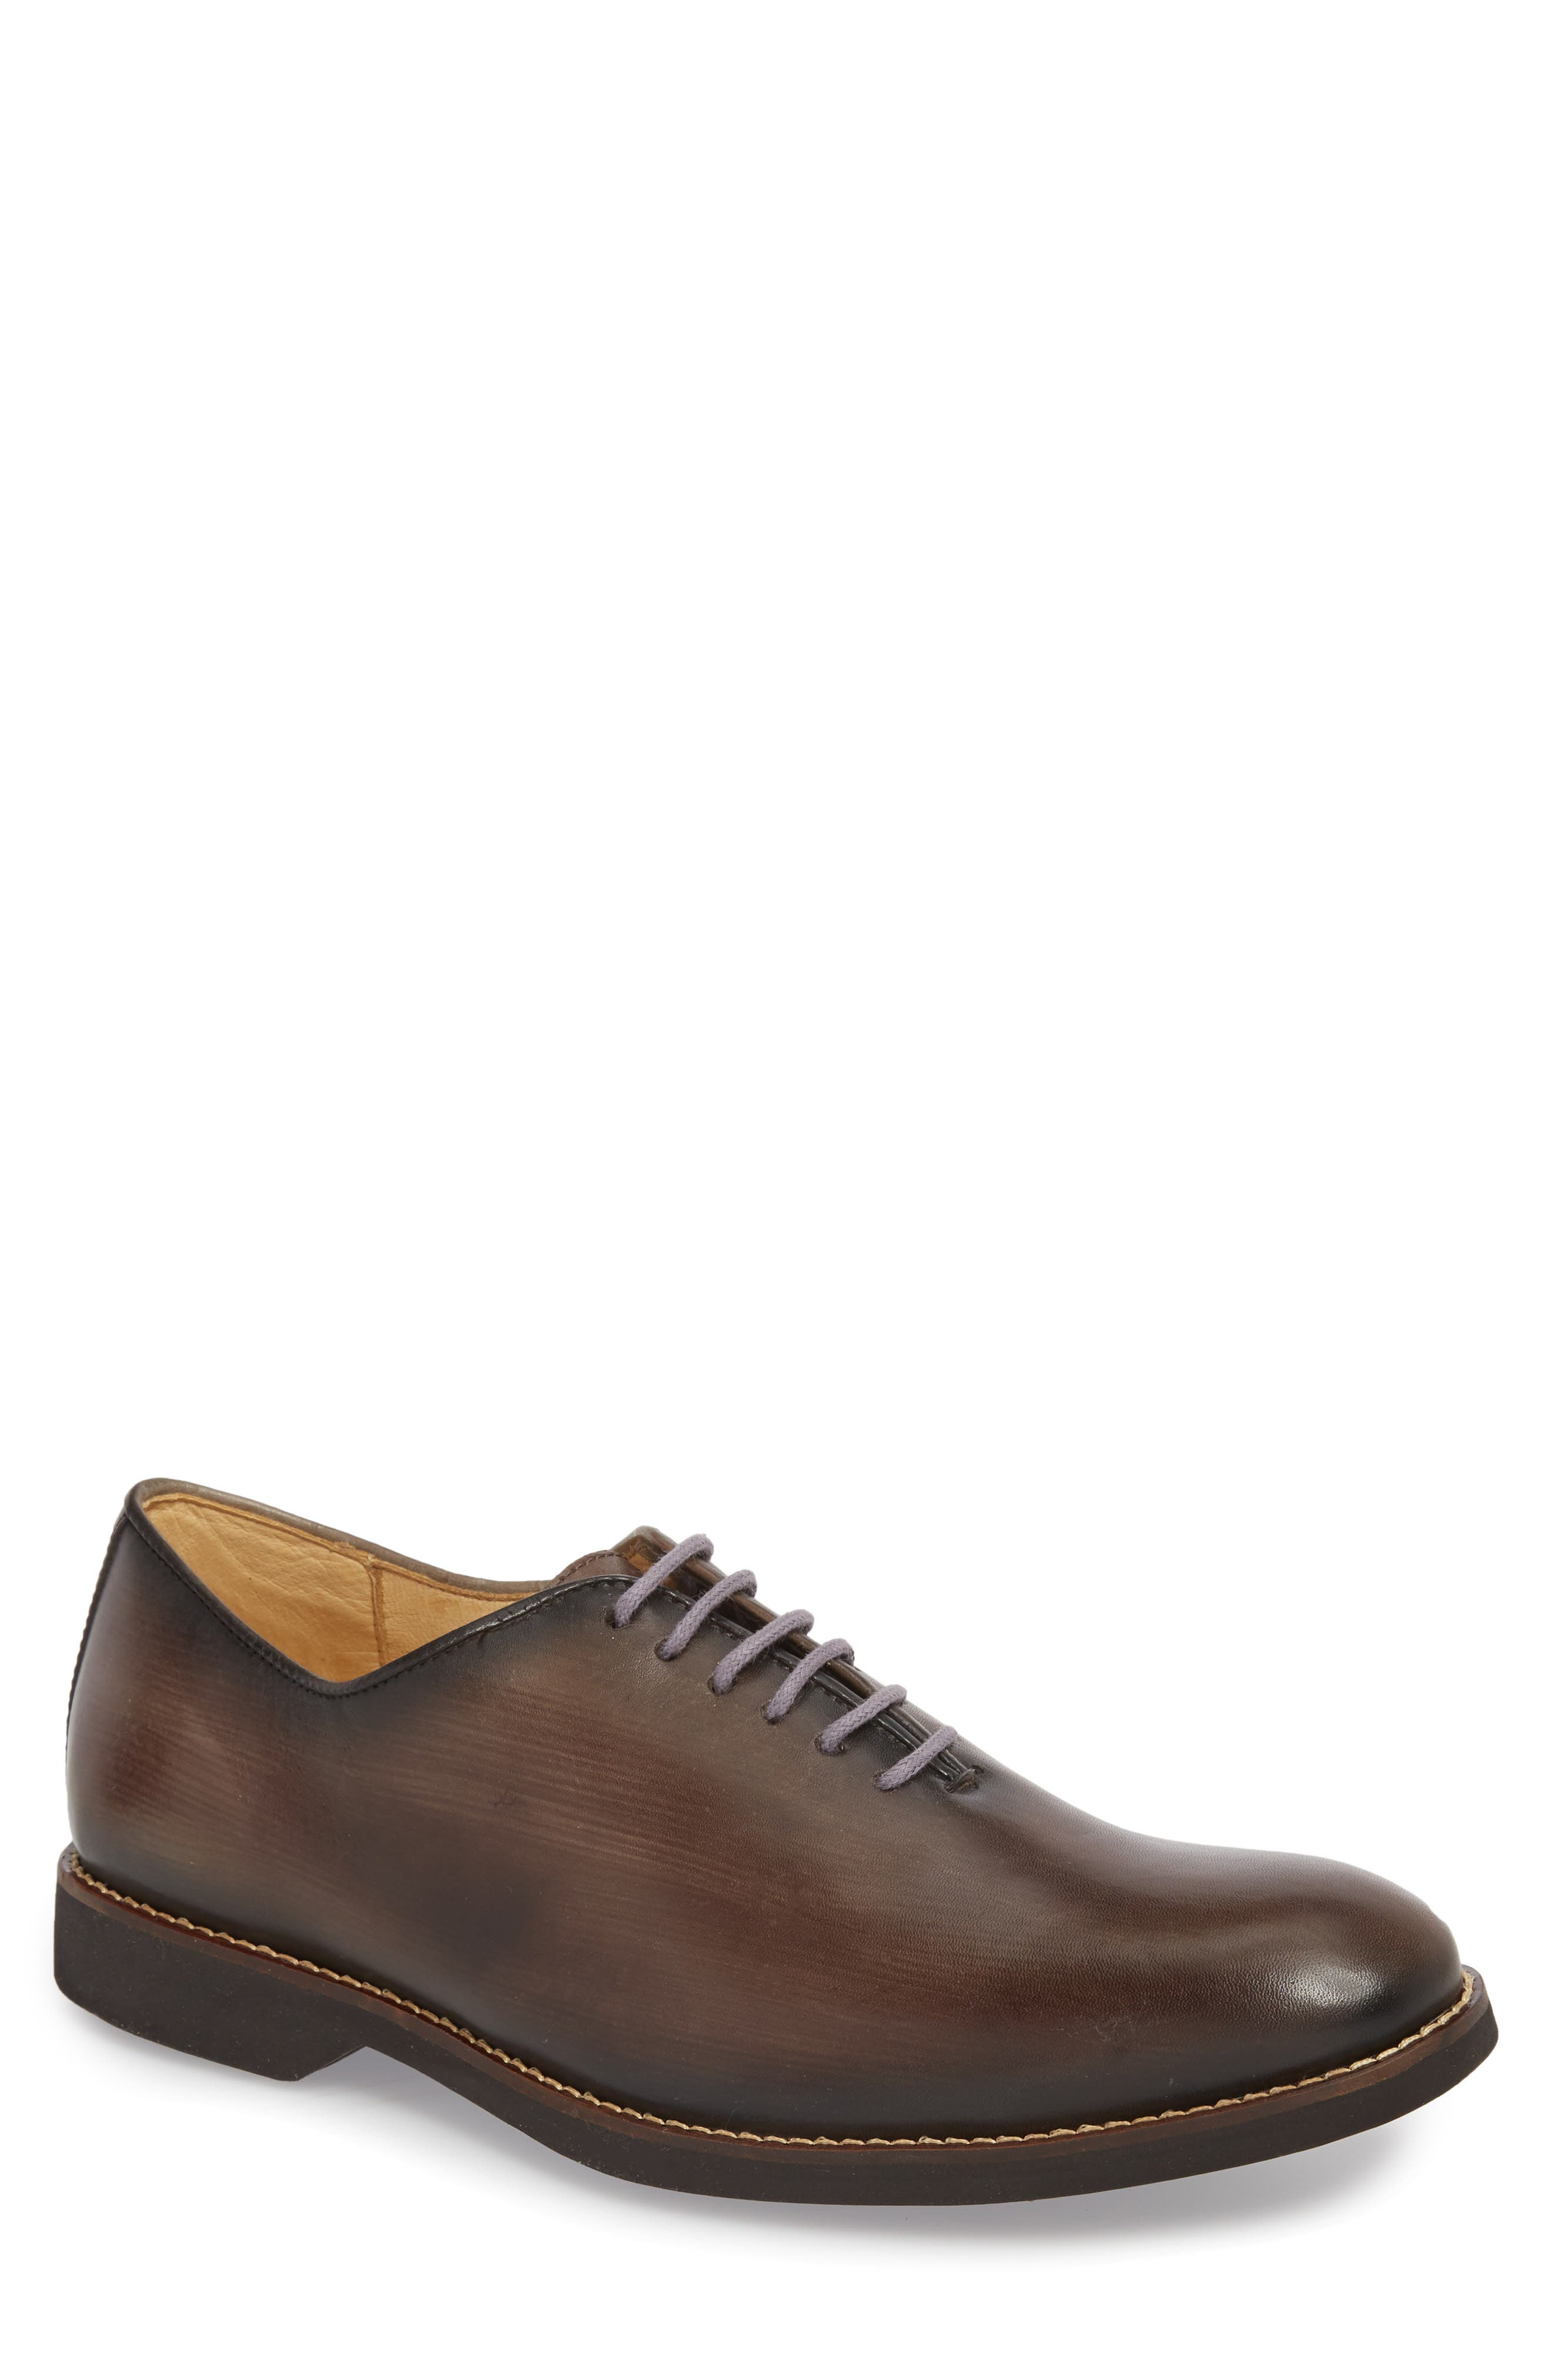 Sao Paulo II Whole Cut Shoe,                             Main thumbnail 1, color,                             TOUCH GREY BRUSHED LEATHER